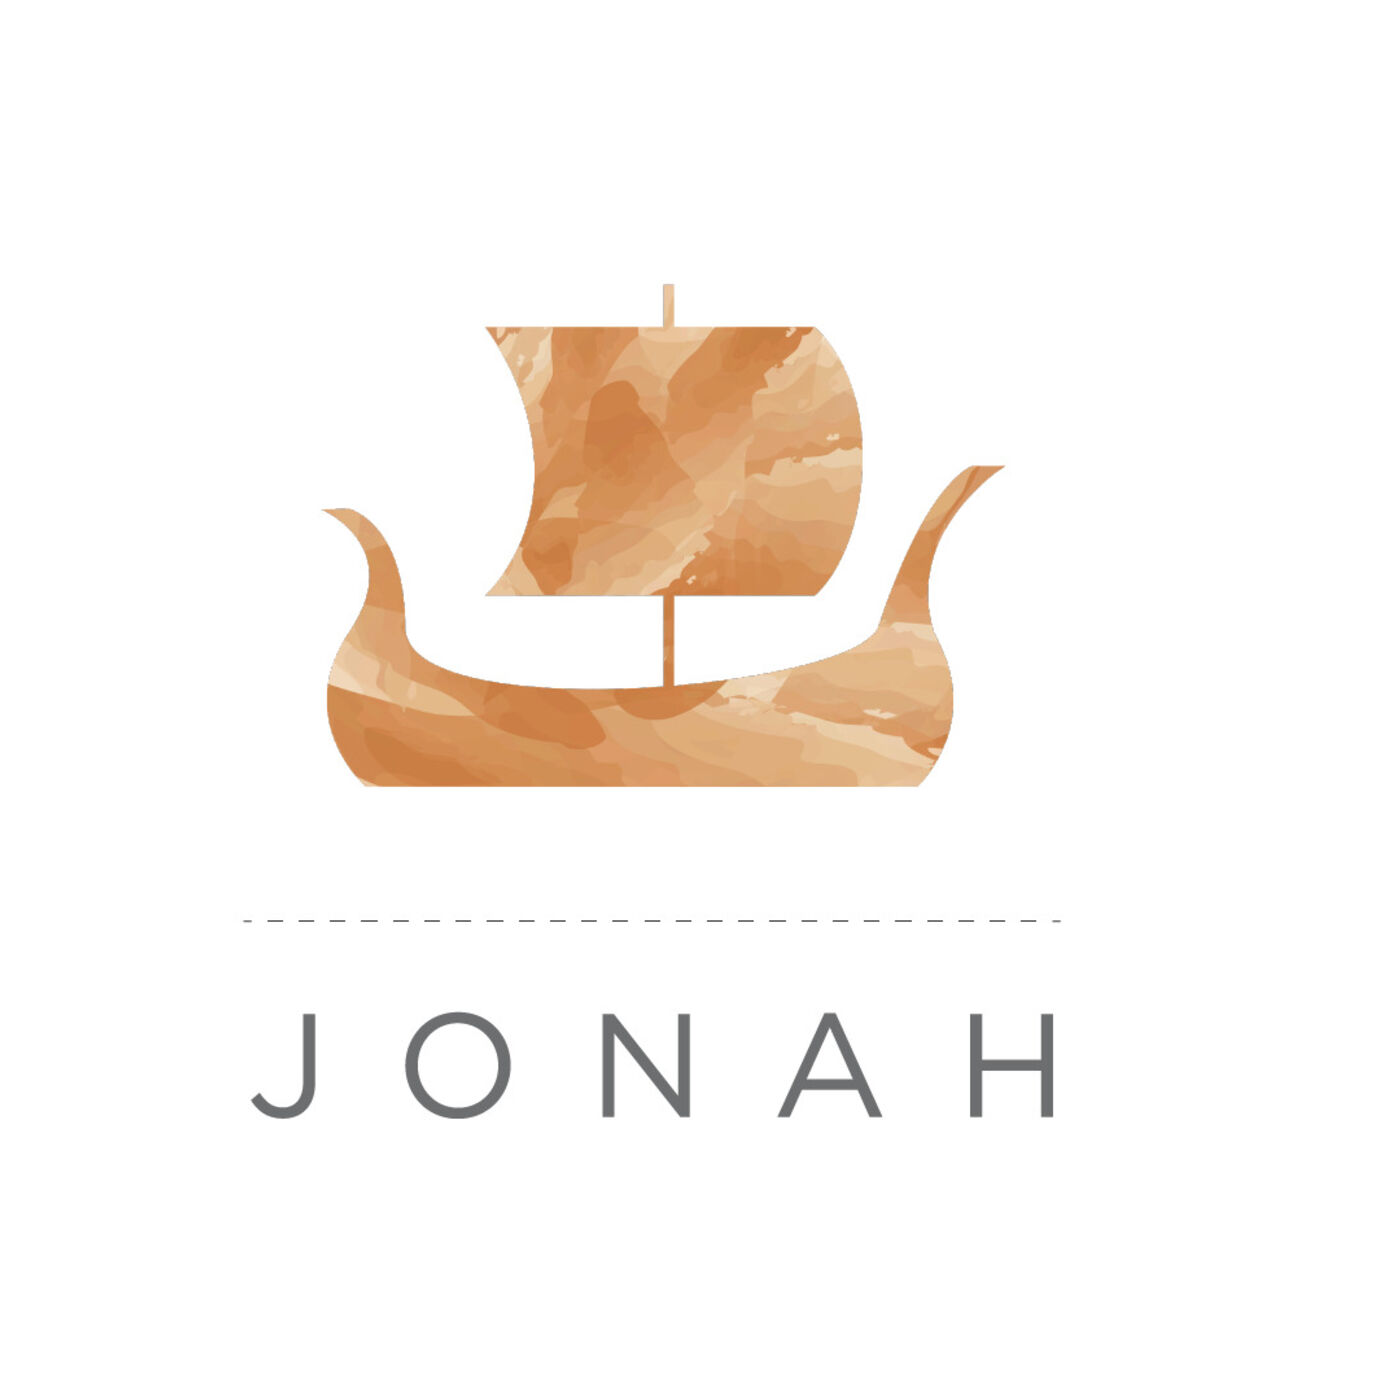 Fear and Trembling (Jonah, Part I)